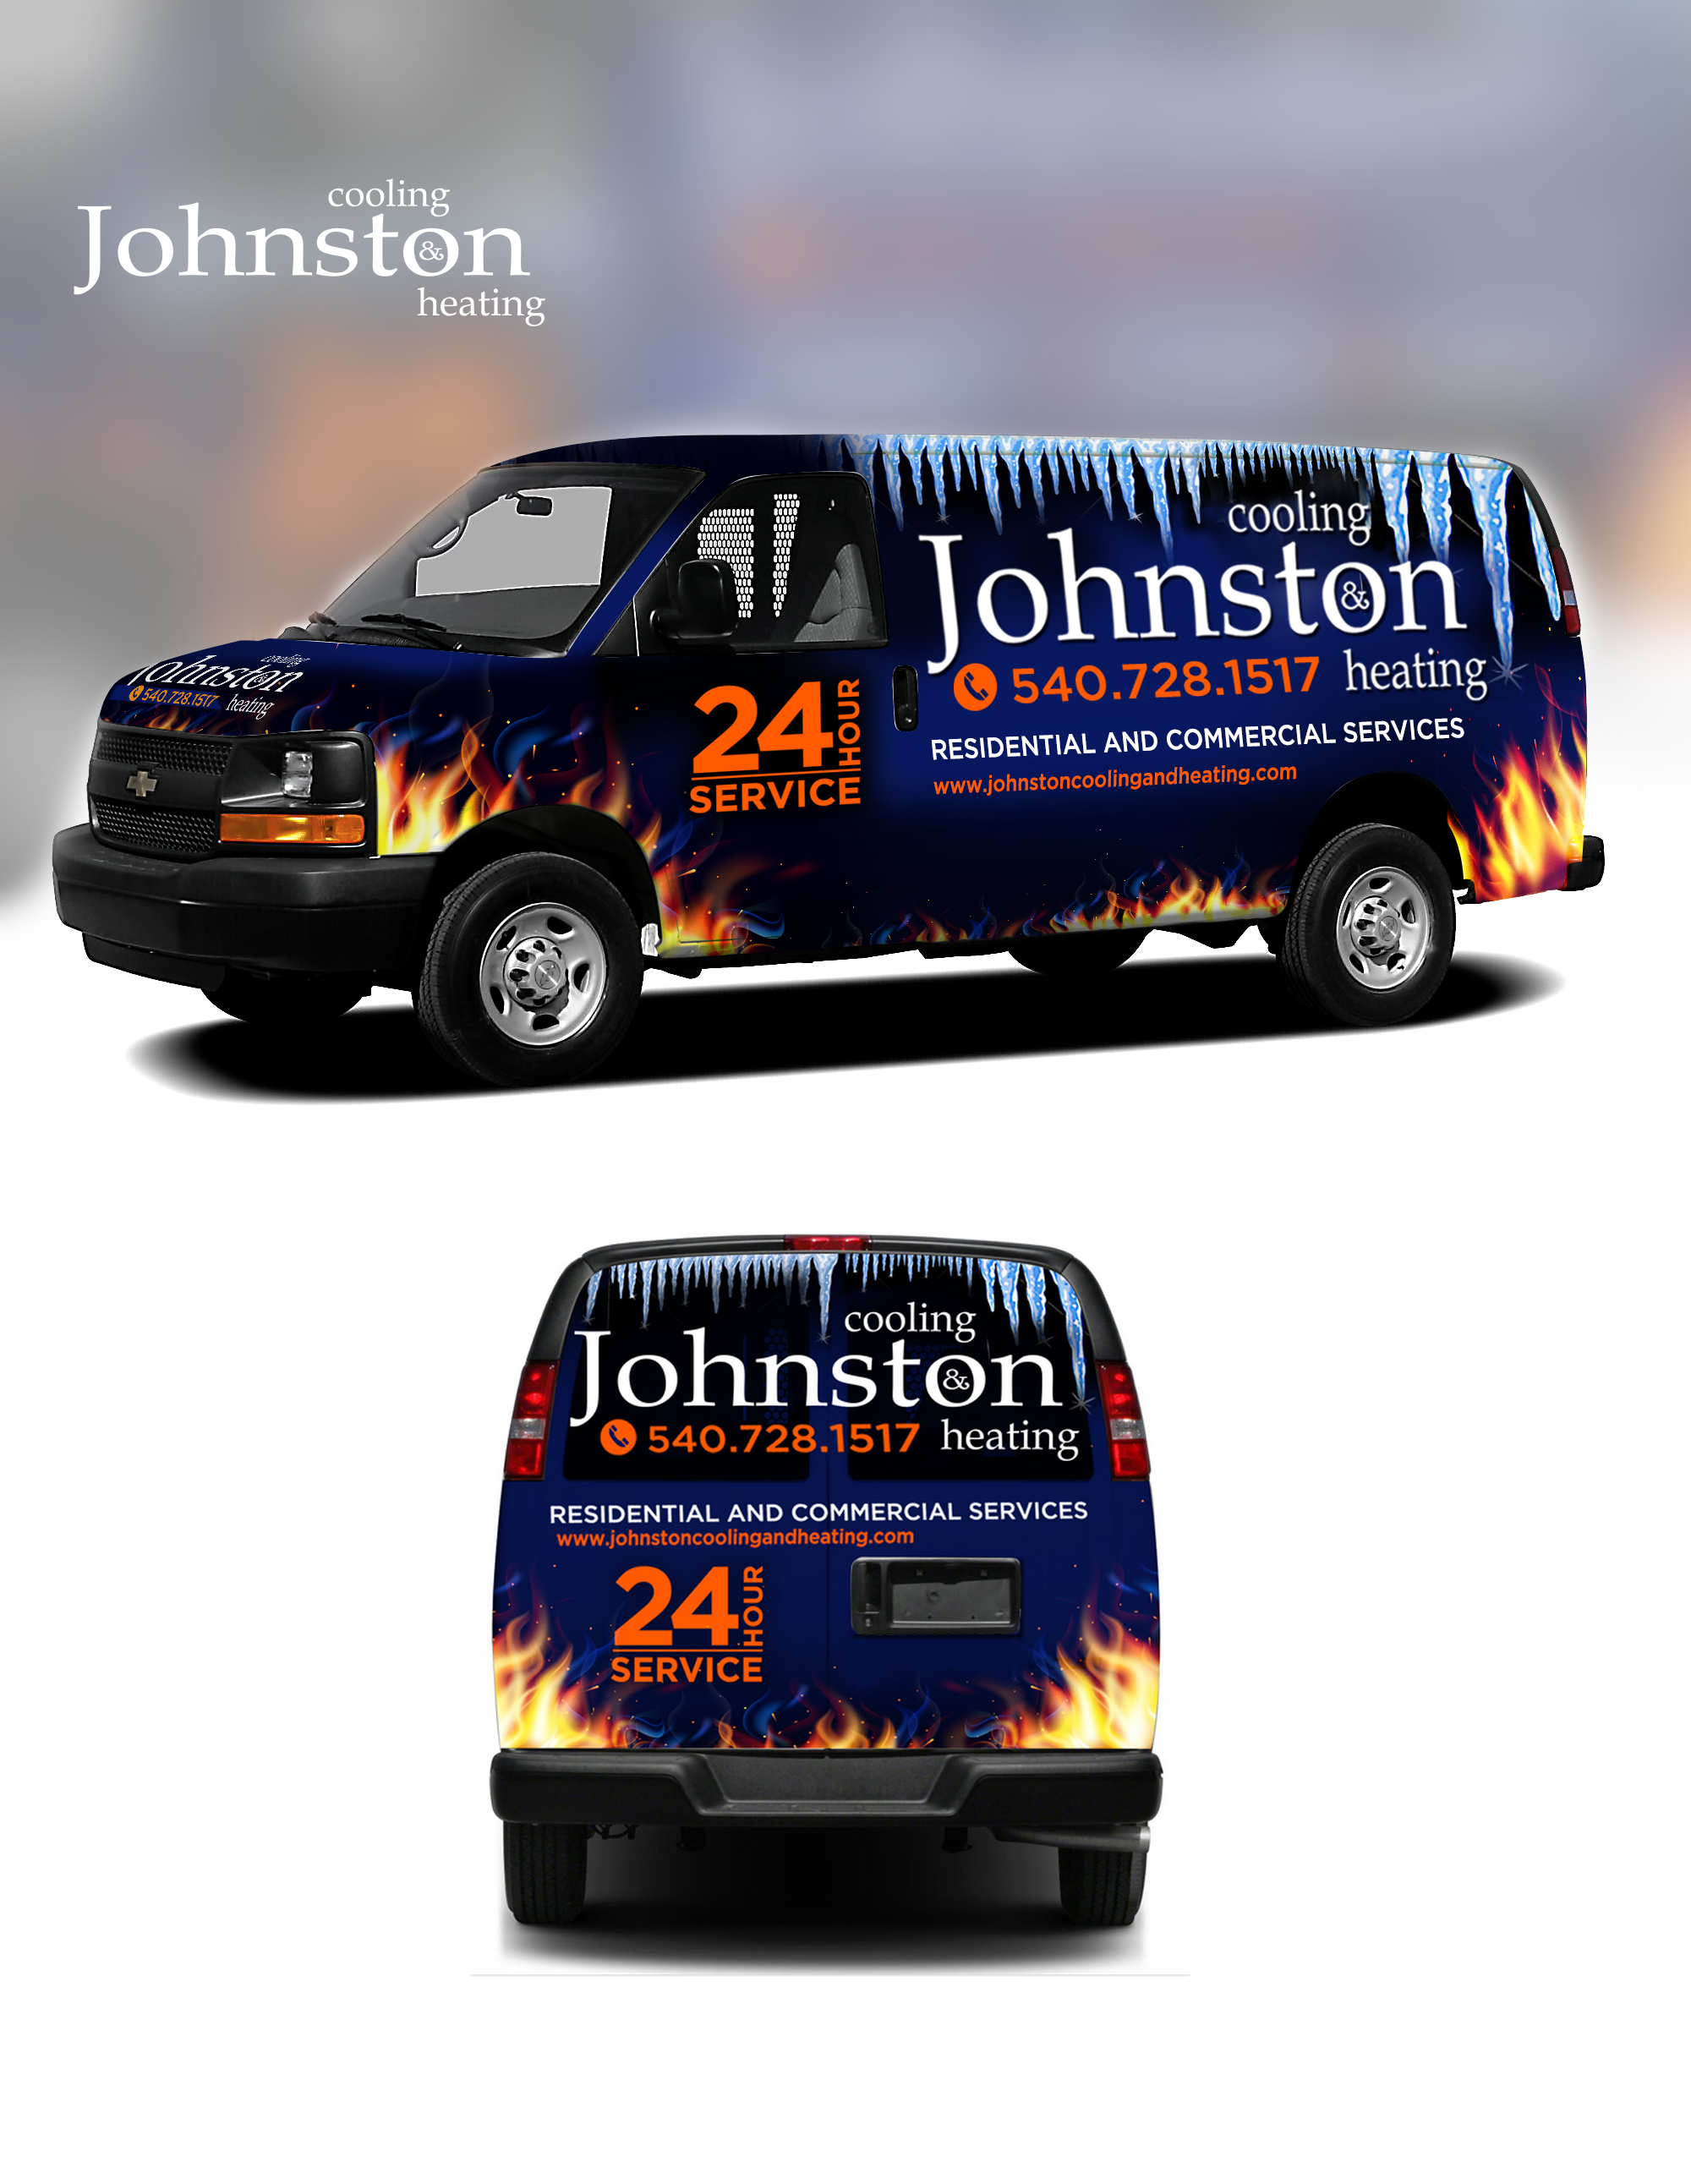 Johnston Cooling And Heating